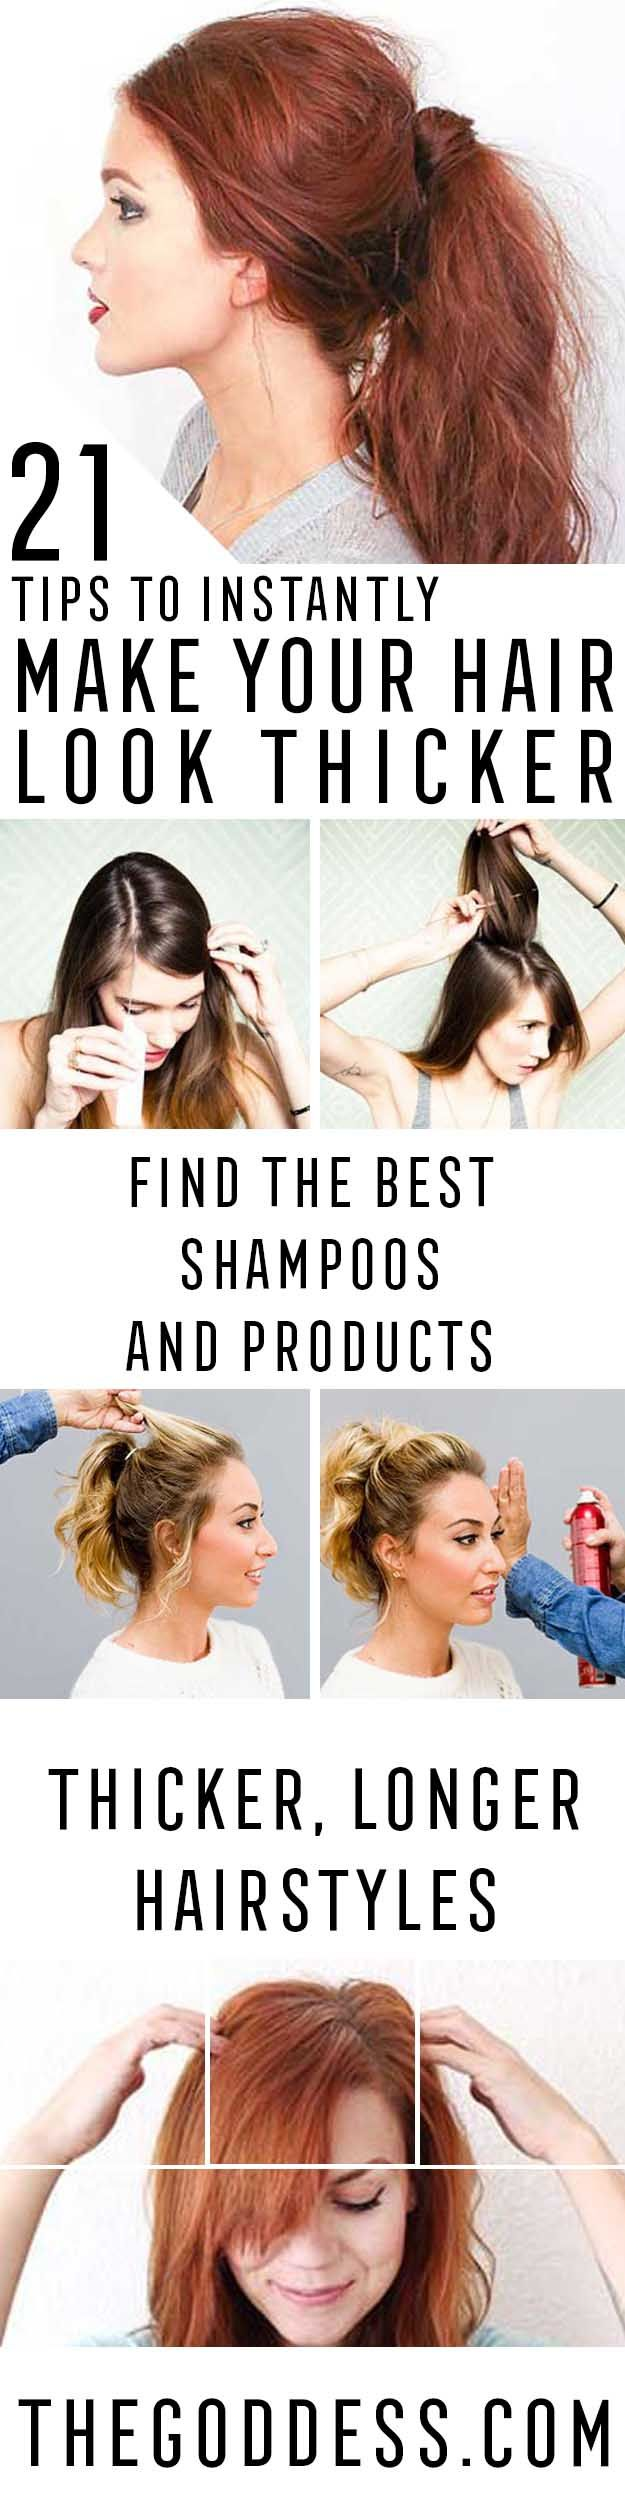 Tips To Instantly Make Your Hair Look Thicker - DIY Products, Step By Step Tutor...